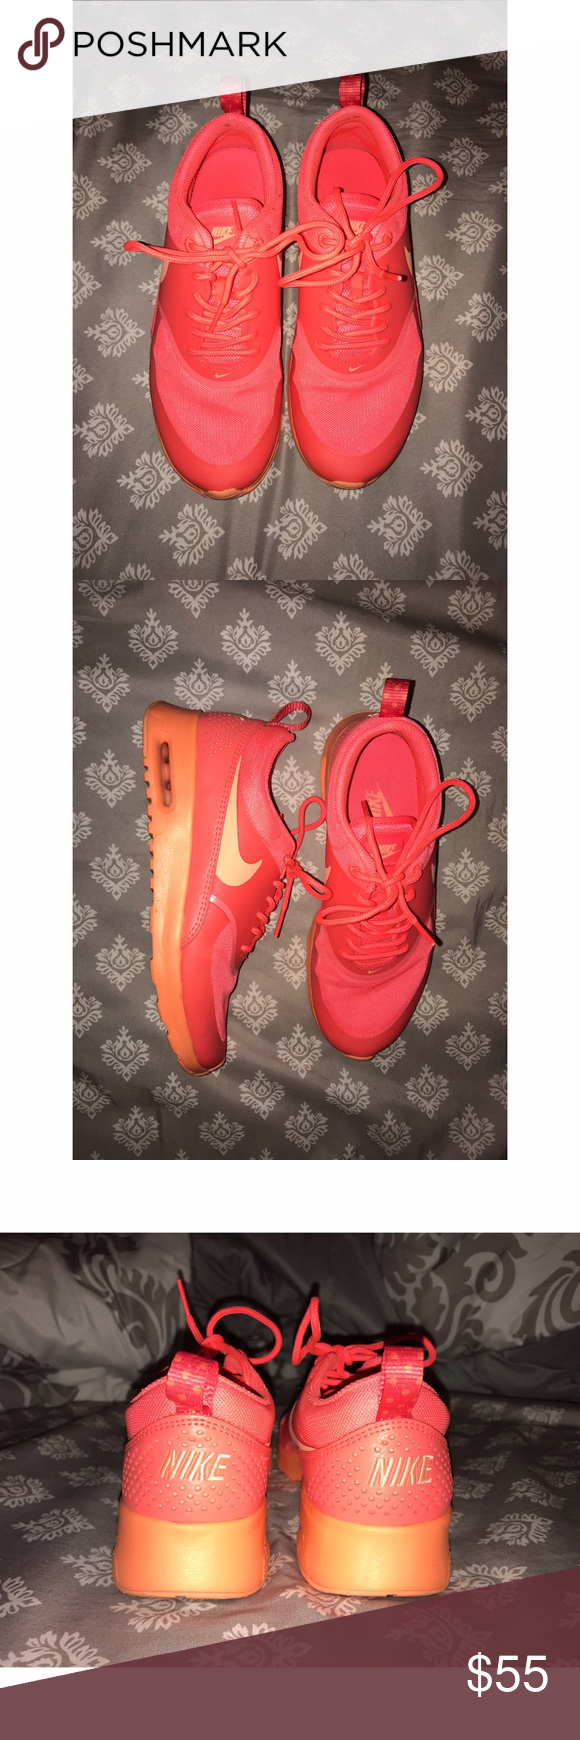 Nike Air Max Thea Wore only a few times! Great condition. Size 6.5 Nike Shoes Athletic Shoes